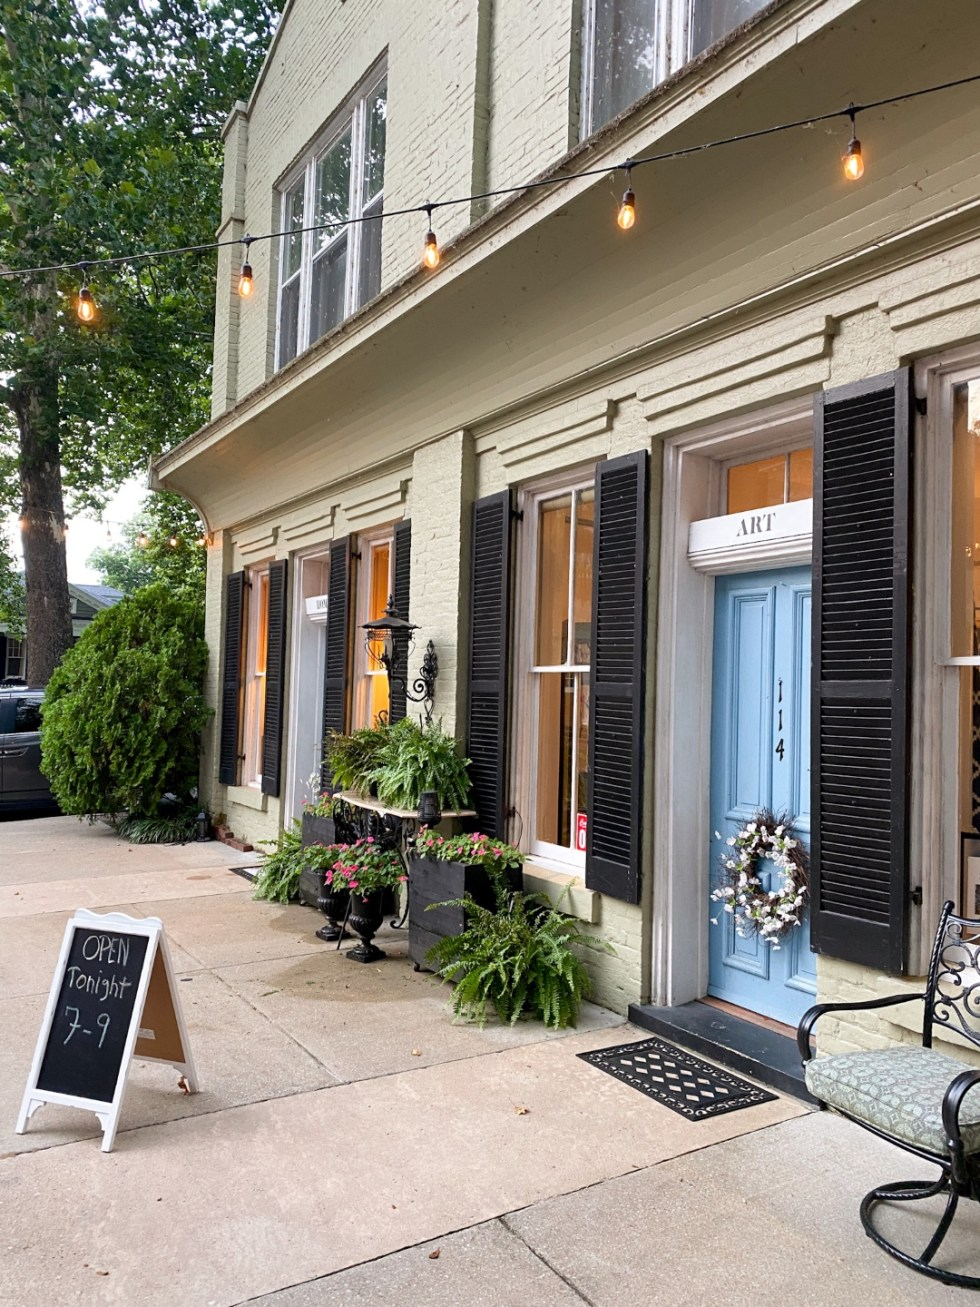 Top 10 Best Things to Do in Edenton, NC: A Complete Travel Guide - I'm Fixin' To - @imfixintoblog | Edenton Travel Guide by popular NC travel guid, I'm Fixin' To: image of a grey brick art gallery building with a light blue door and black shutters.